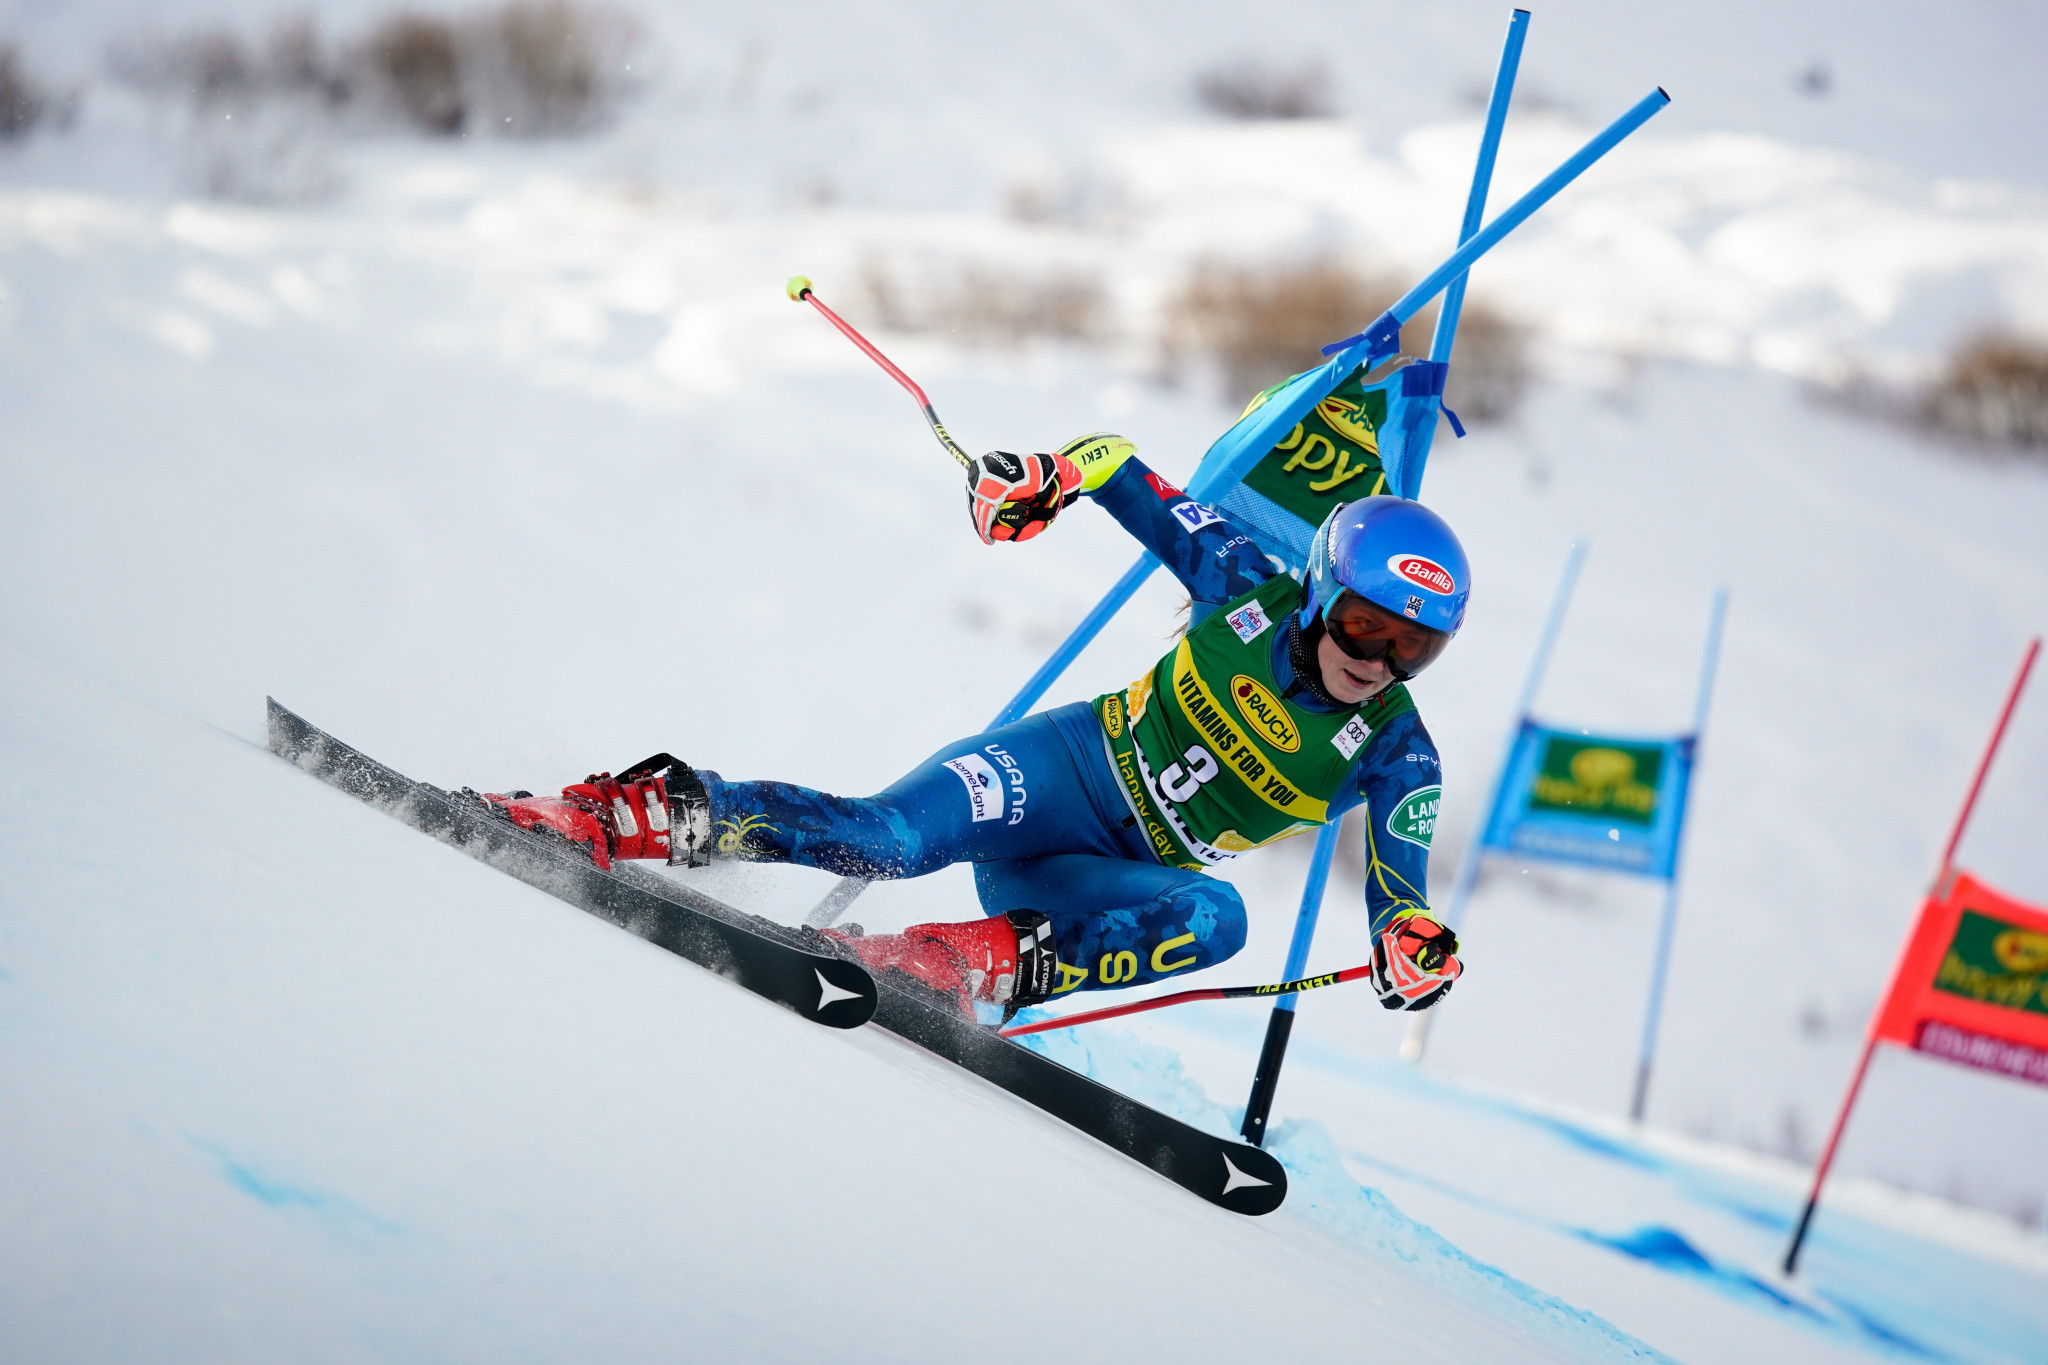 Mikaela Shiffrin won her first FIS Alpine Ski World Cup event since January ©Getty Images